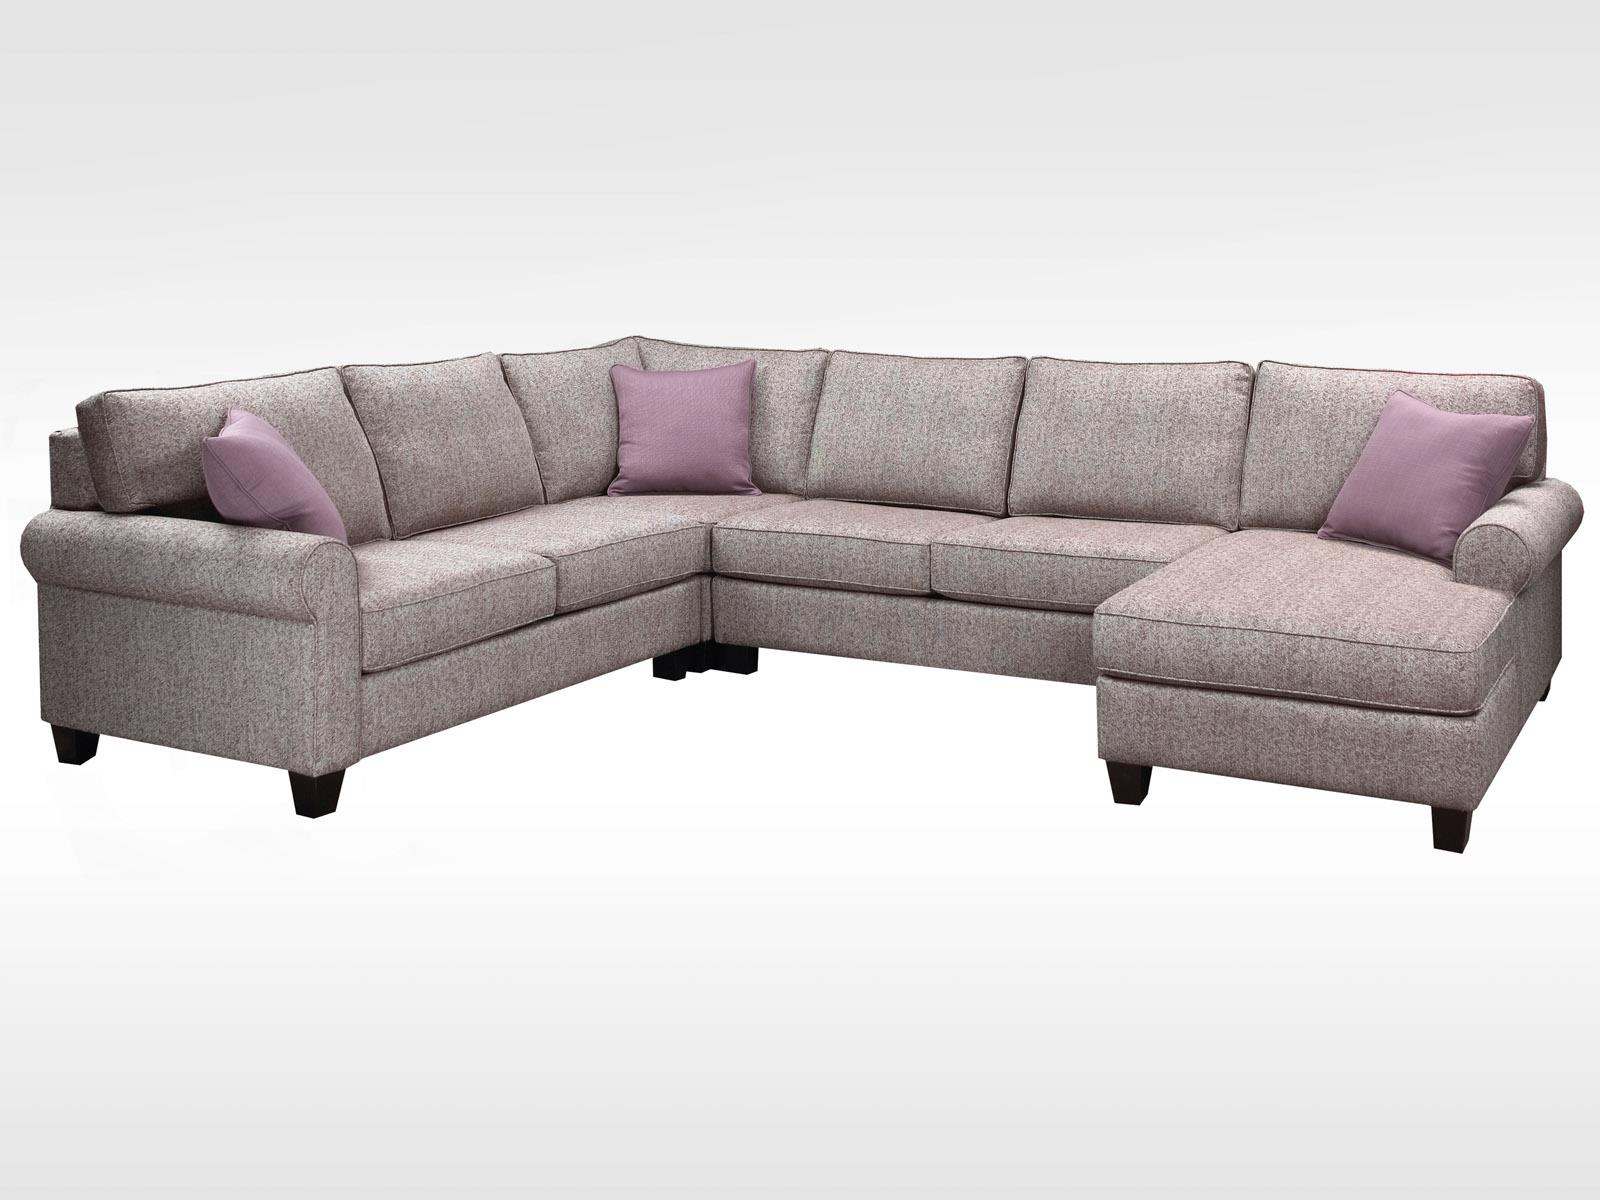 2844 Parker Sectional by Brentwood Classics at Stoney Creek Furniture